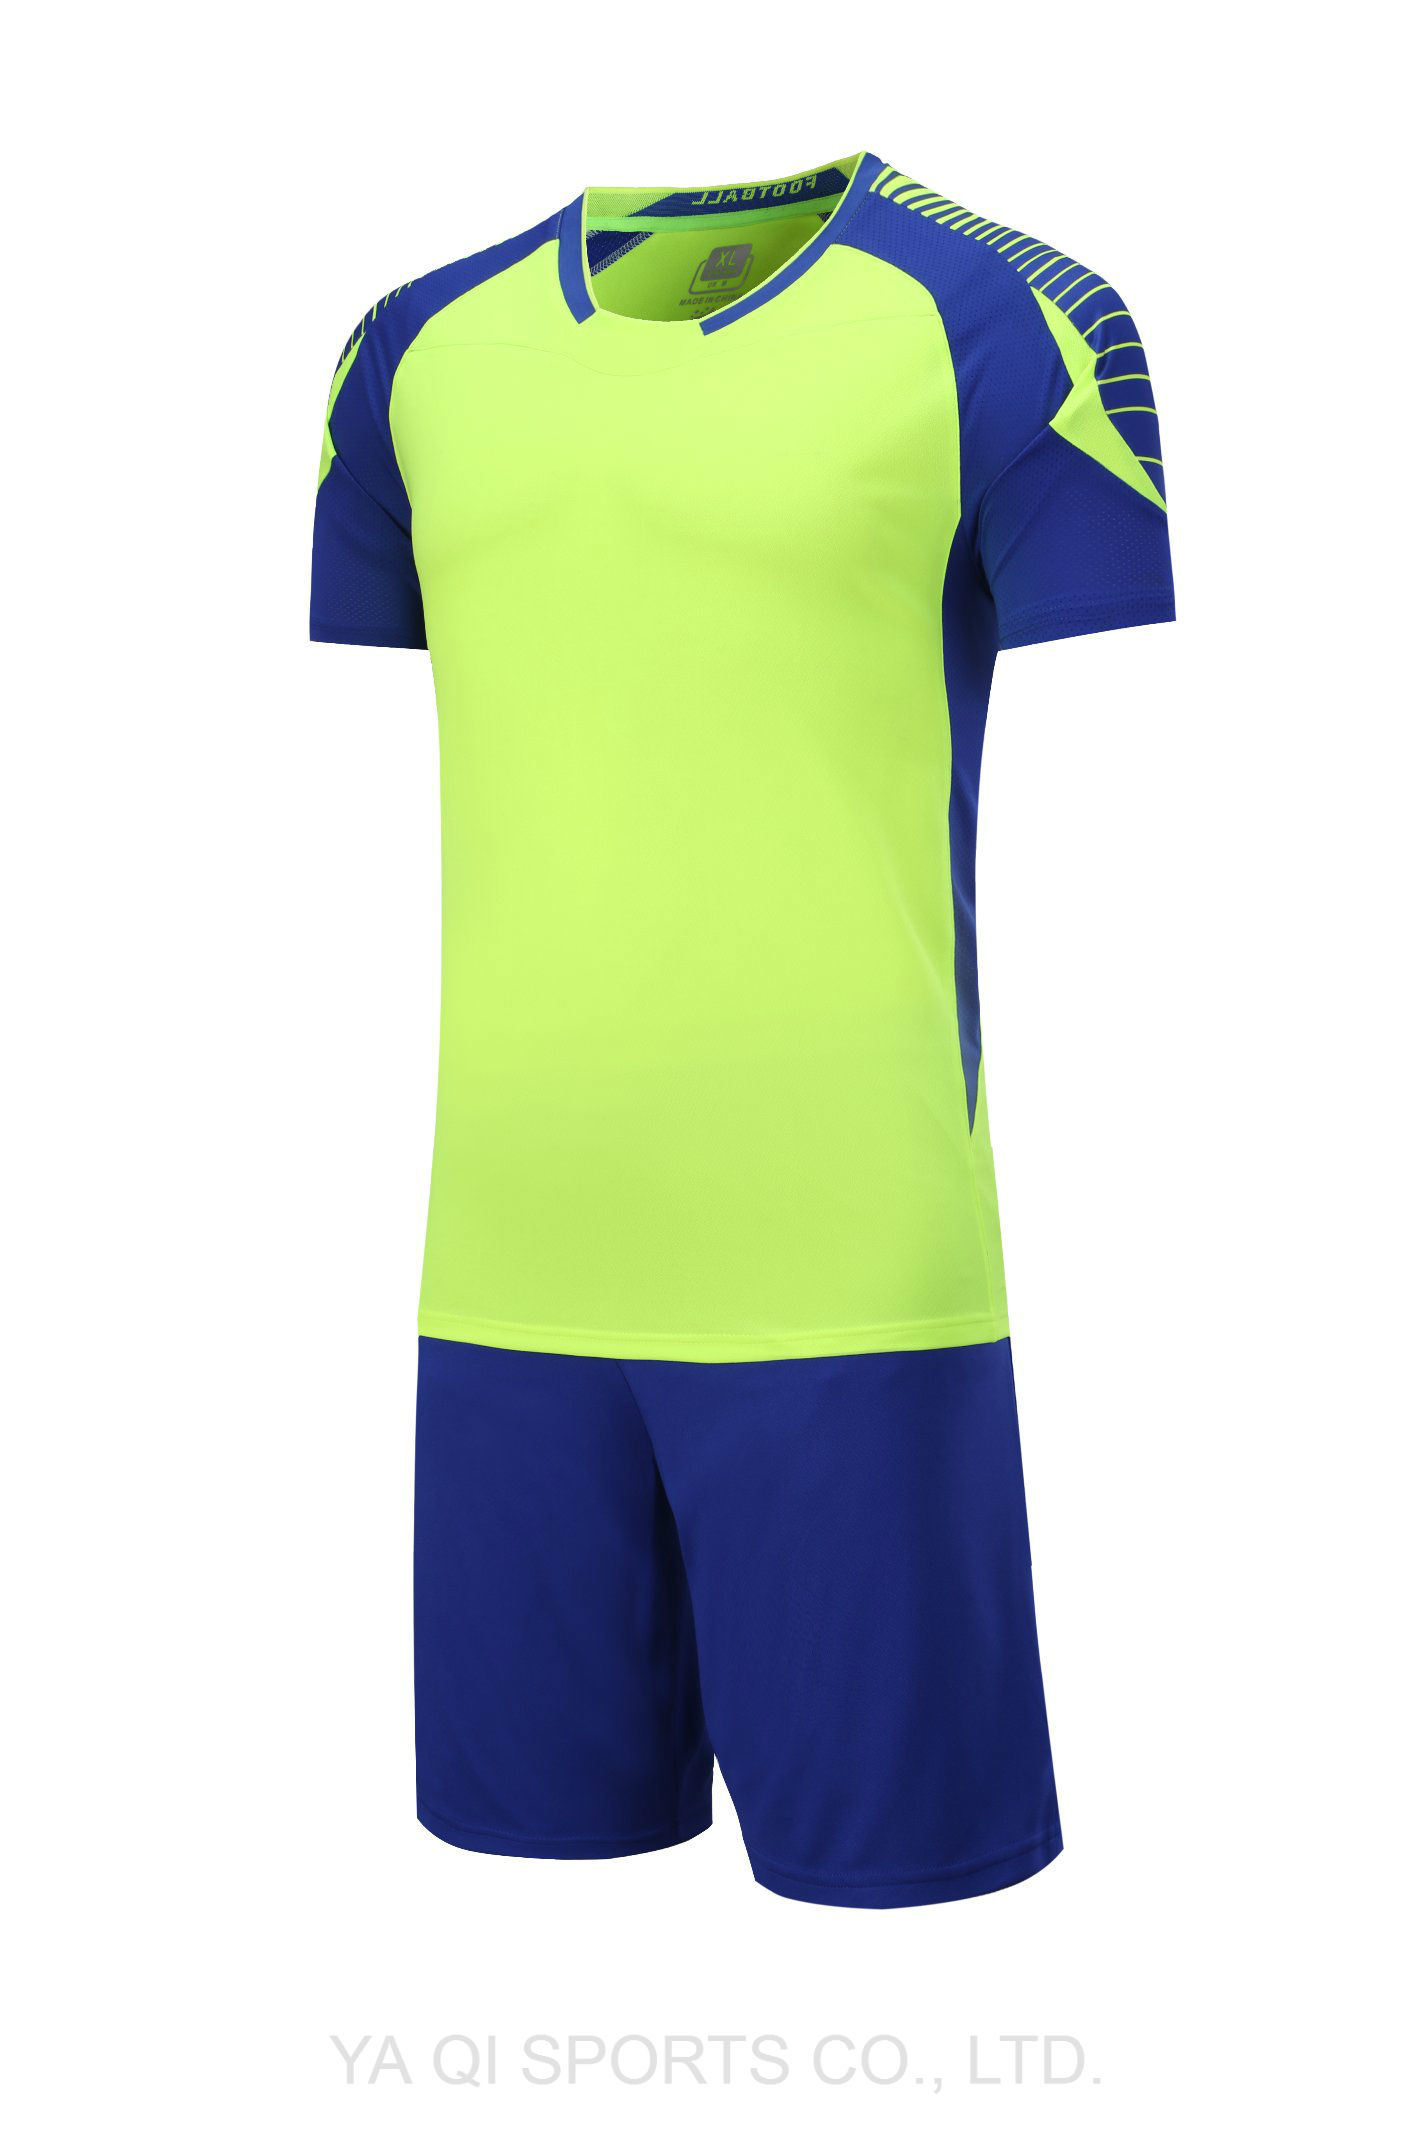 Cheap Team Soccer Shirts - Cotswold Hire 15cc553b9